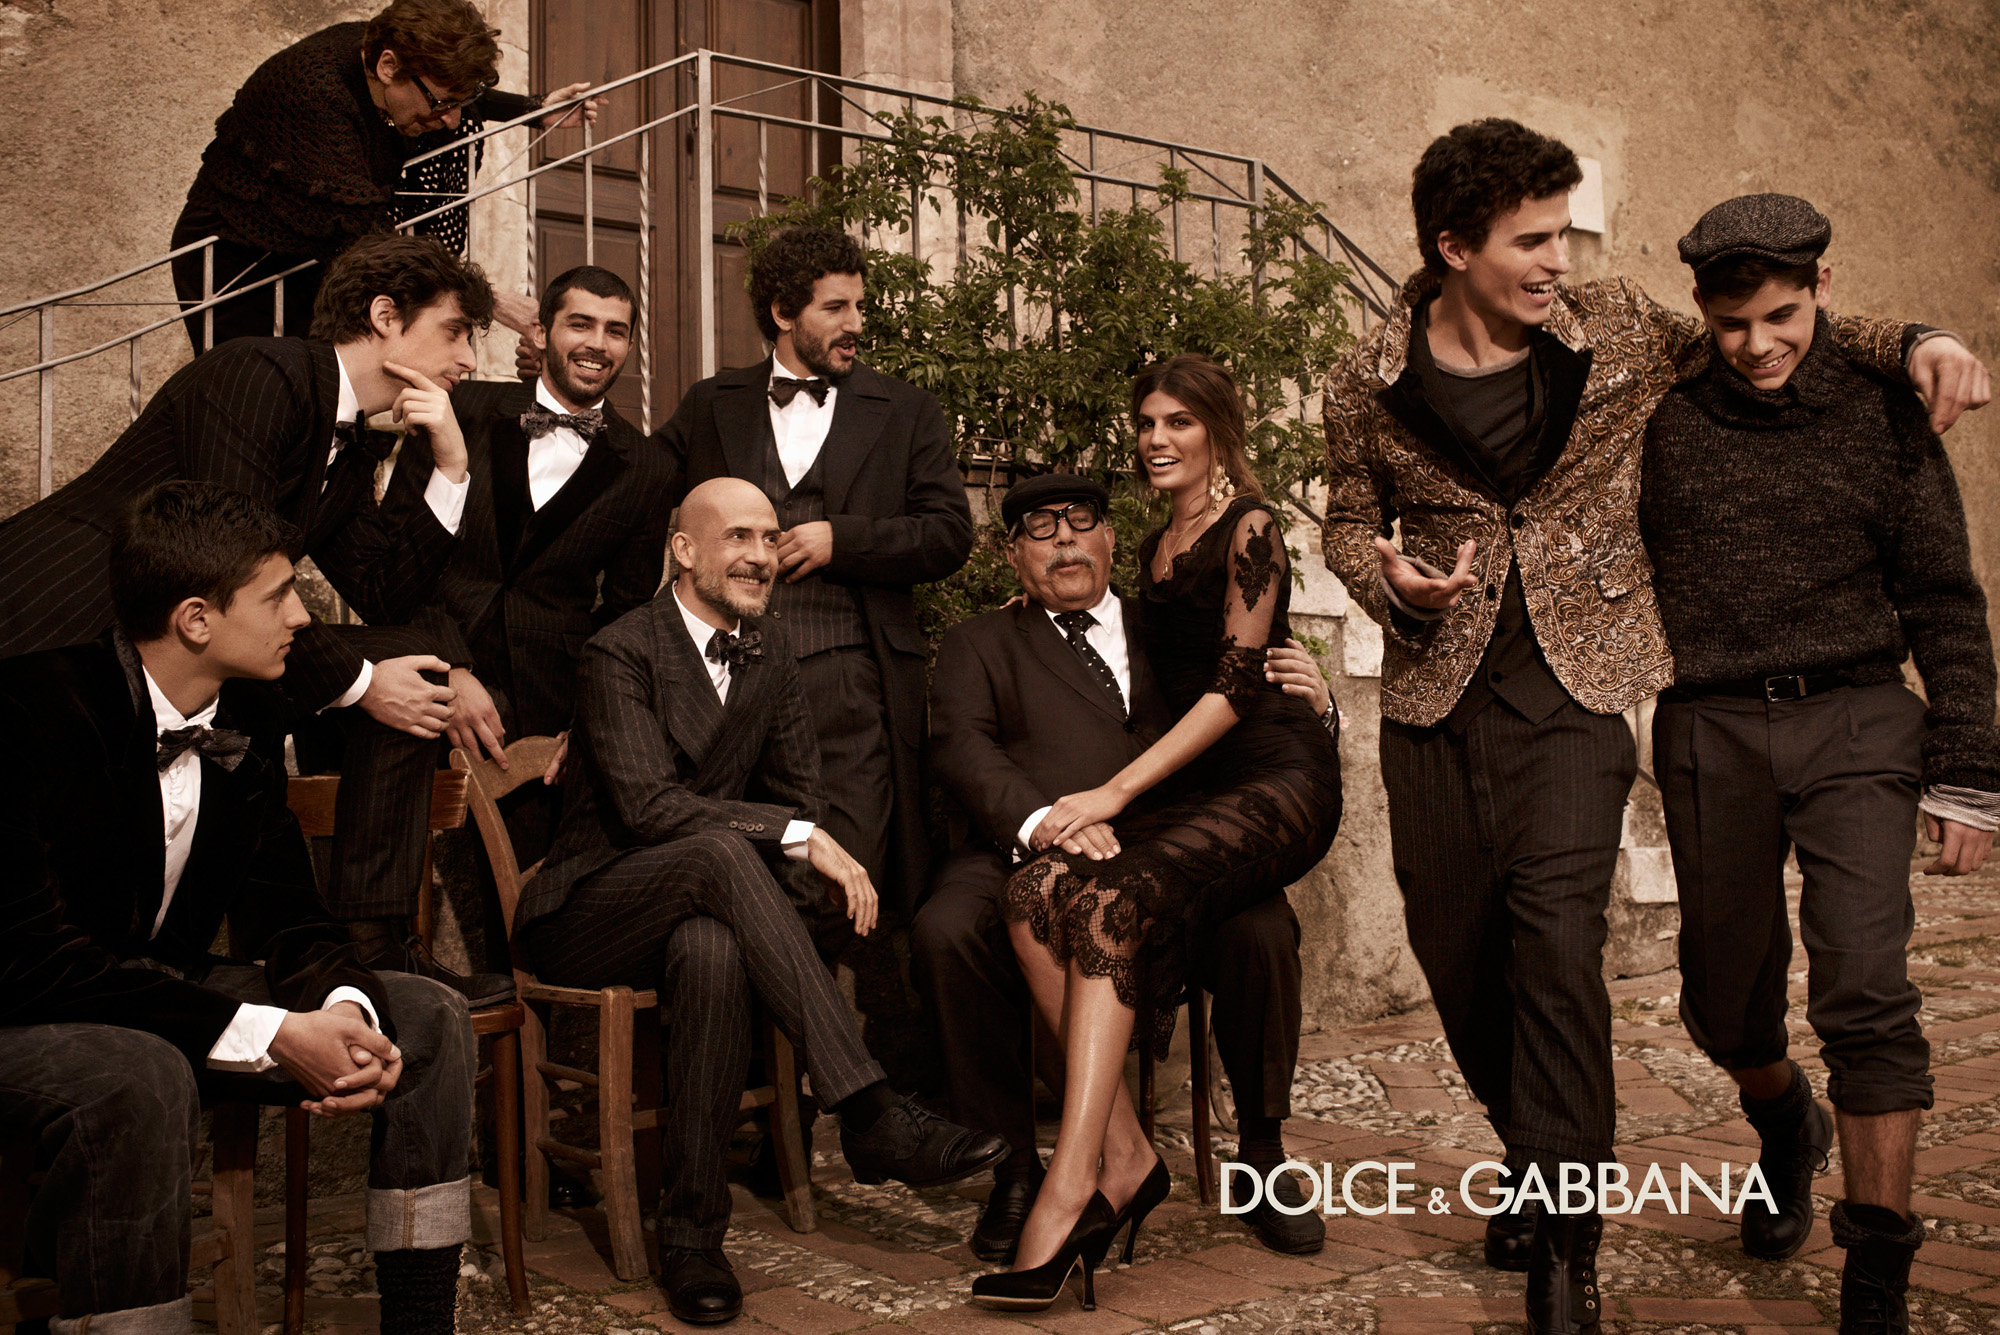 Dolce & Gabbana HD wallpapers, Desktop wallpaper - most viewed